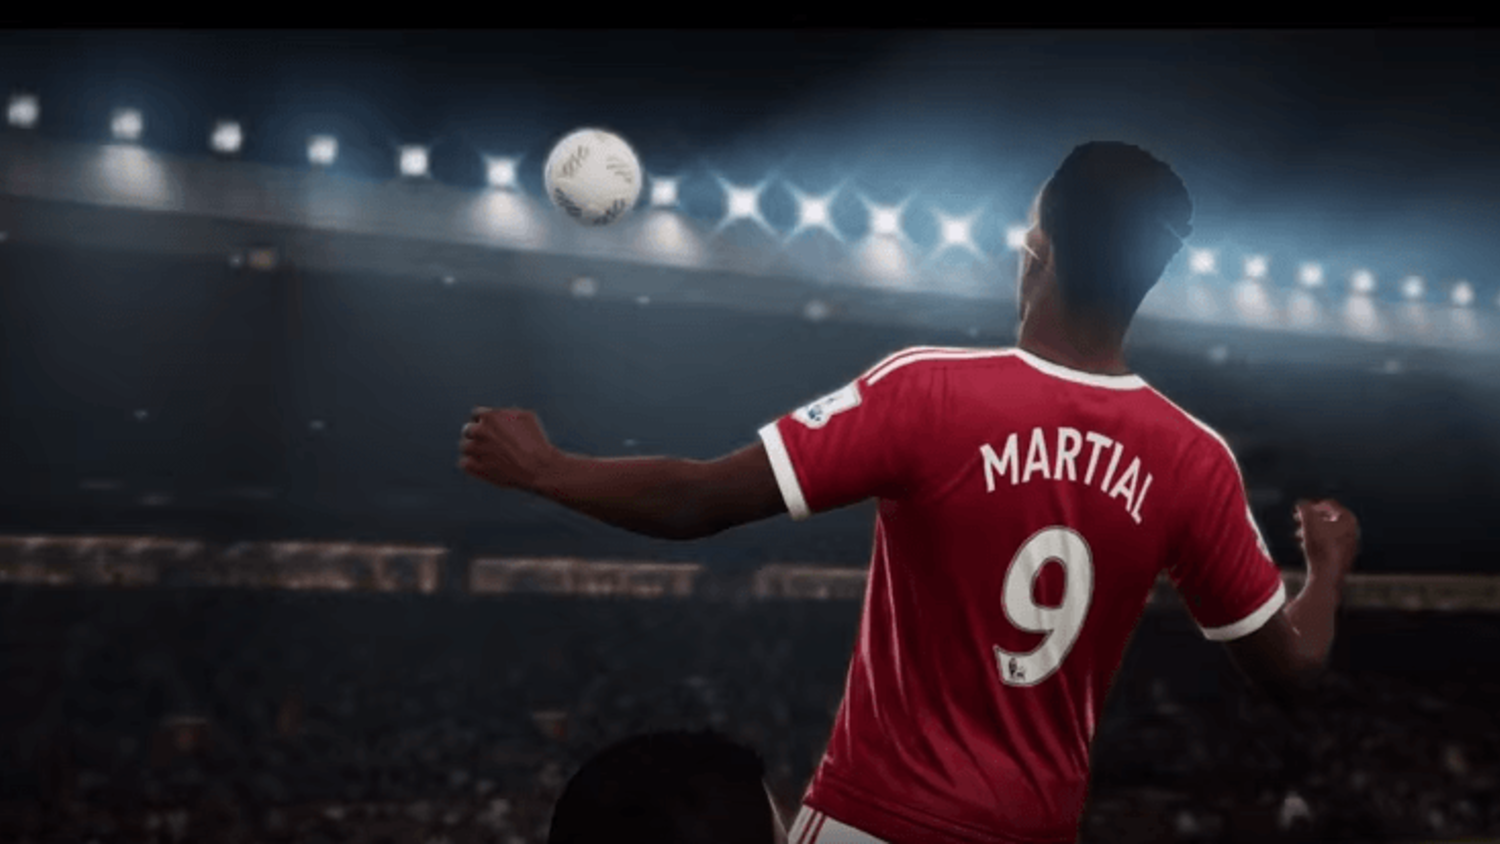 FIFA 17 'Football Has Changed' Reveal Trailer Released